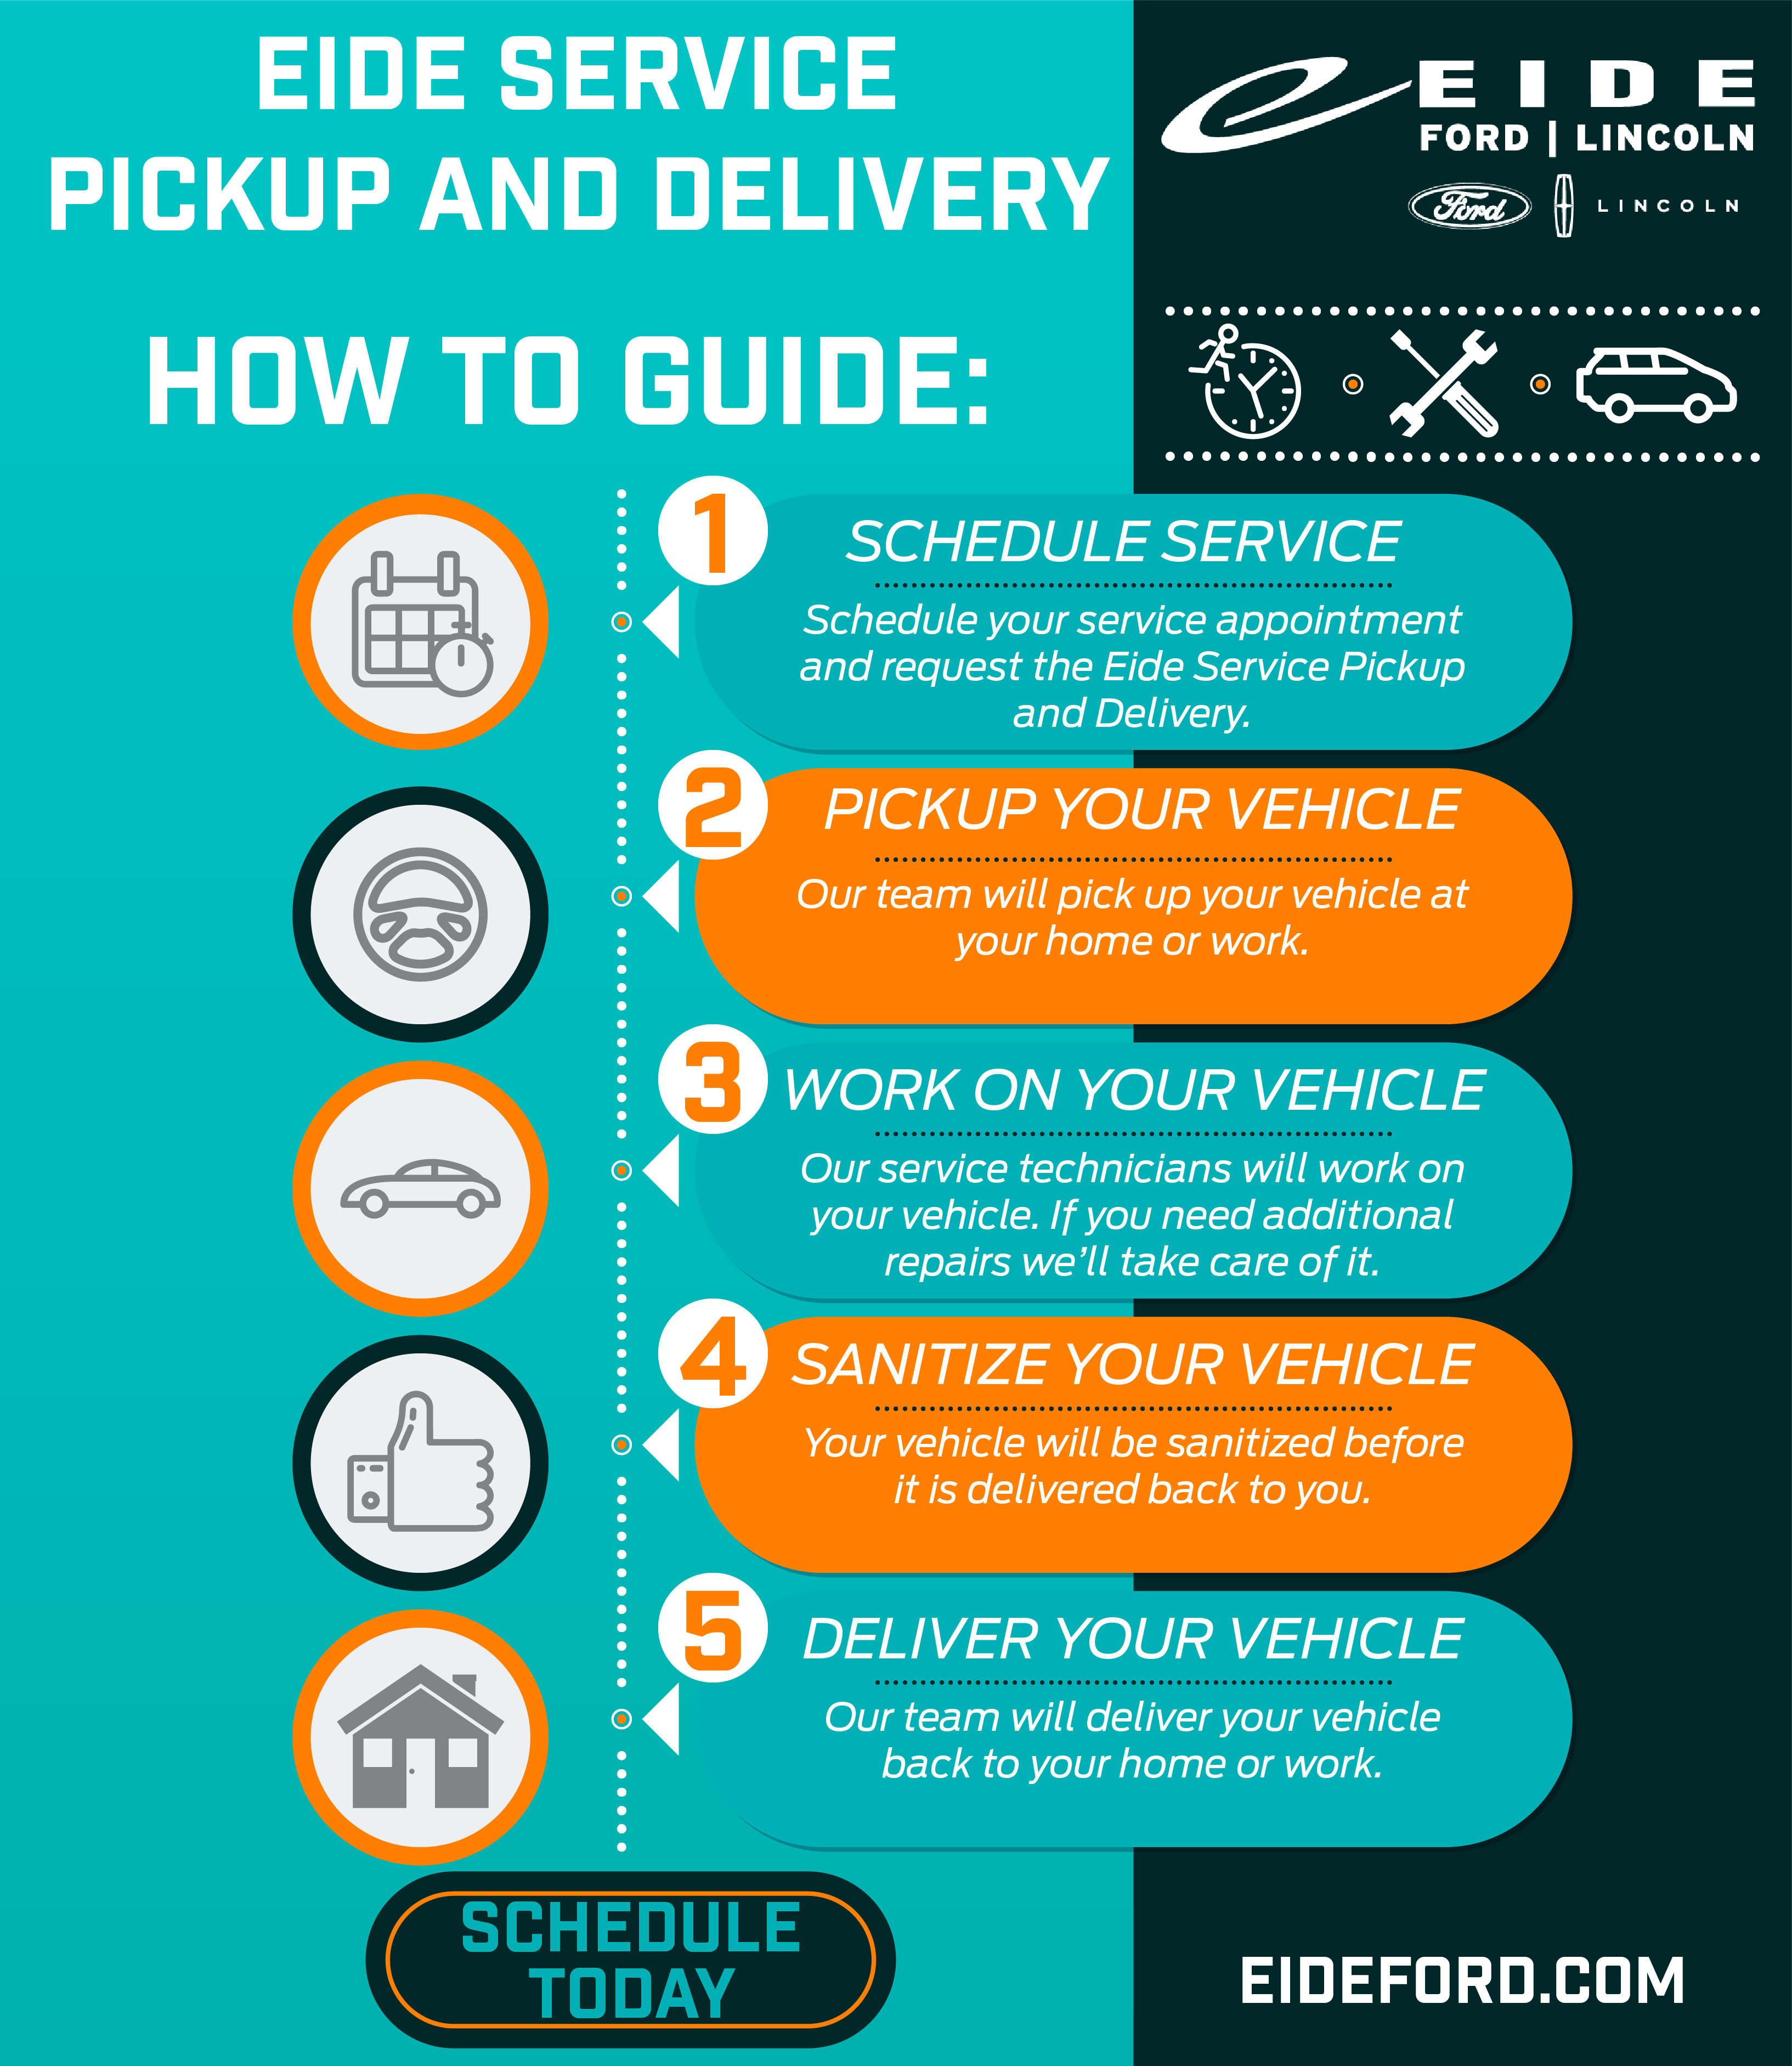 Eide Ford Service Pickup and Delivery